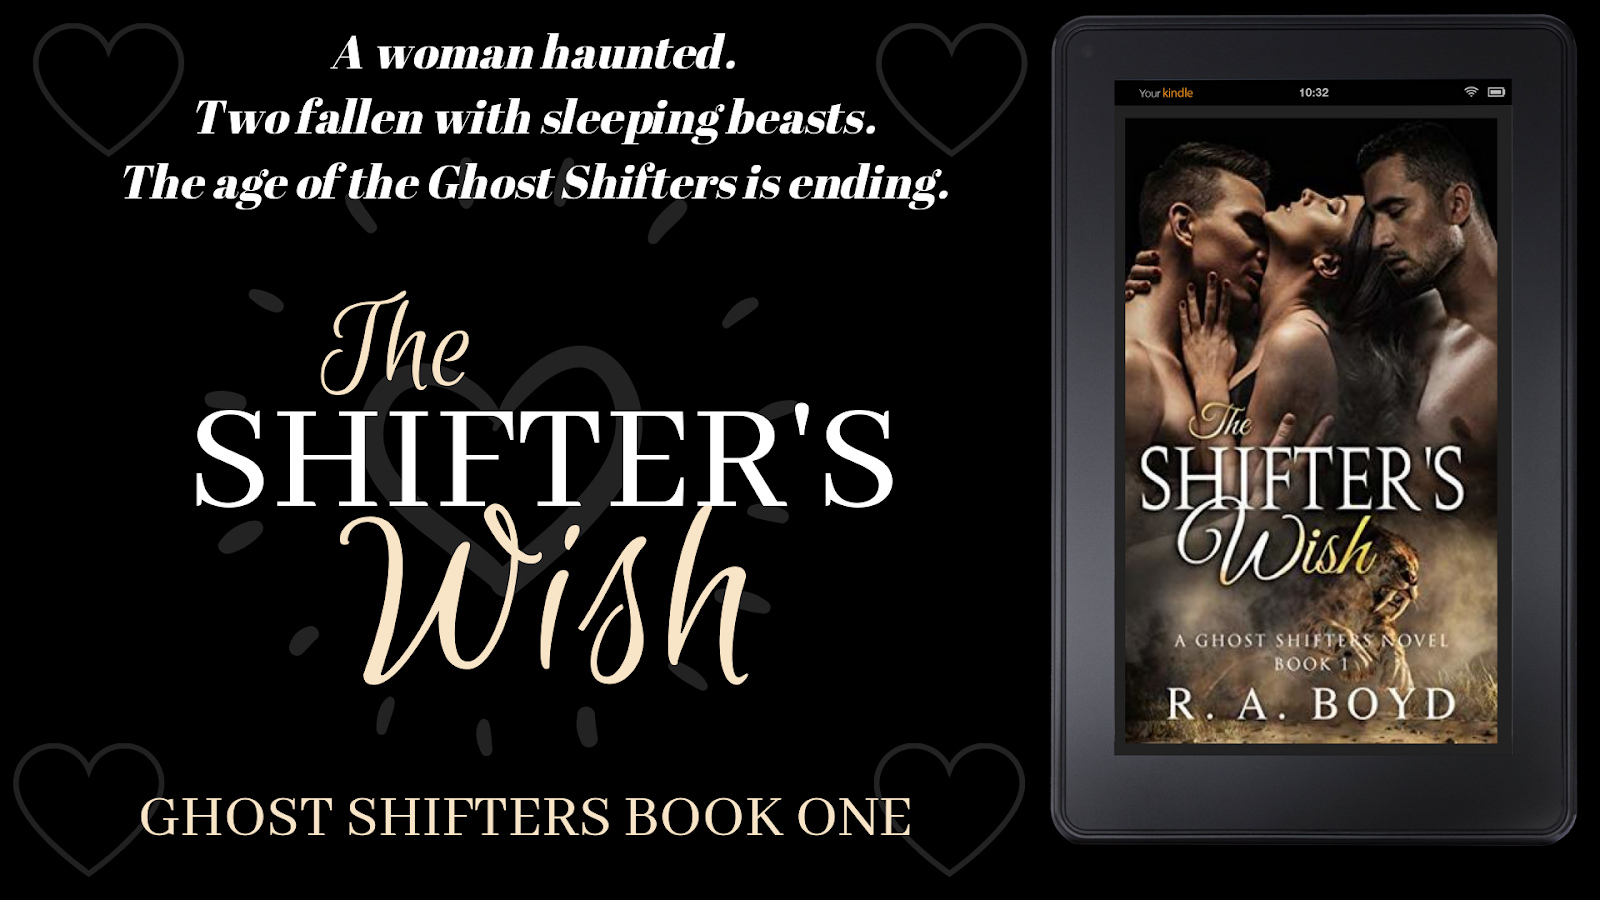 The Shifter's Wish